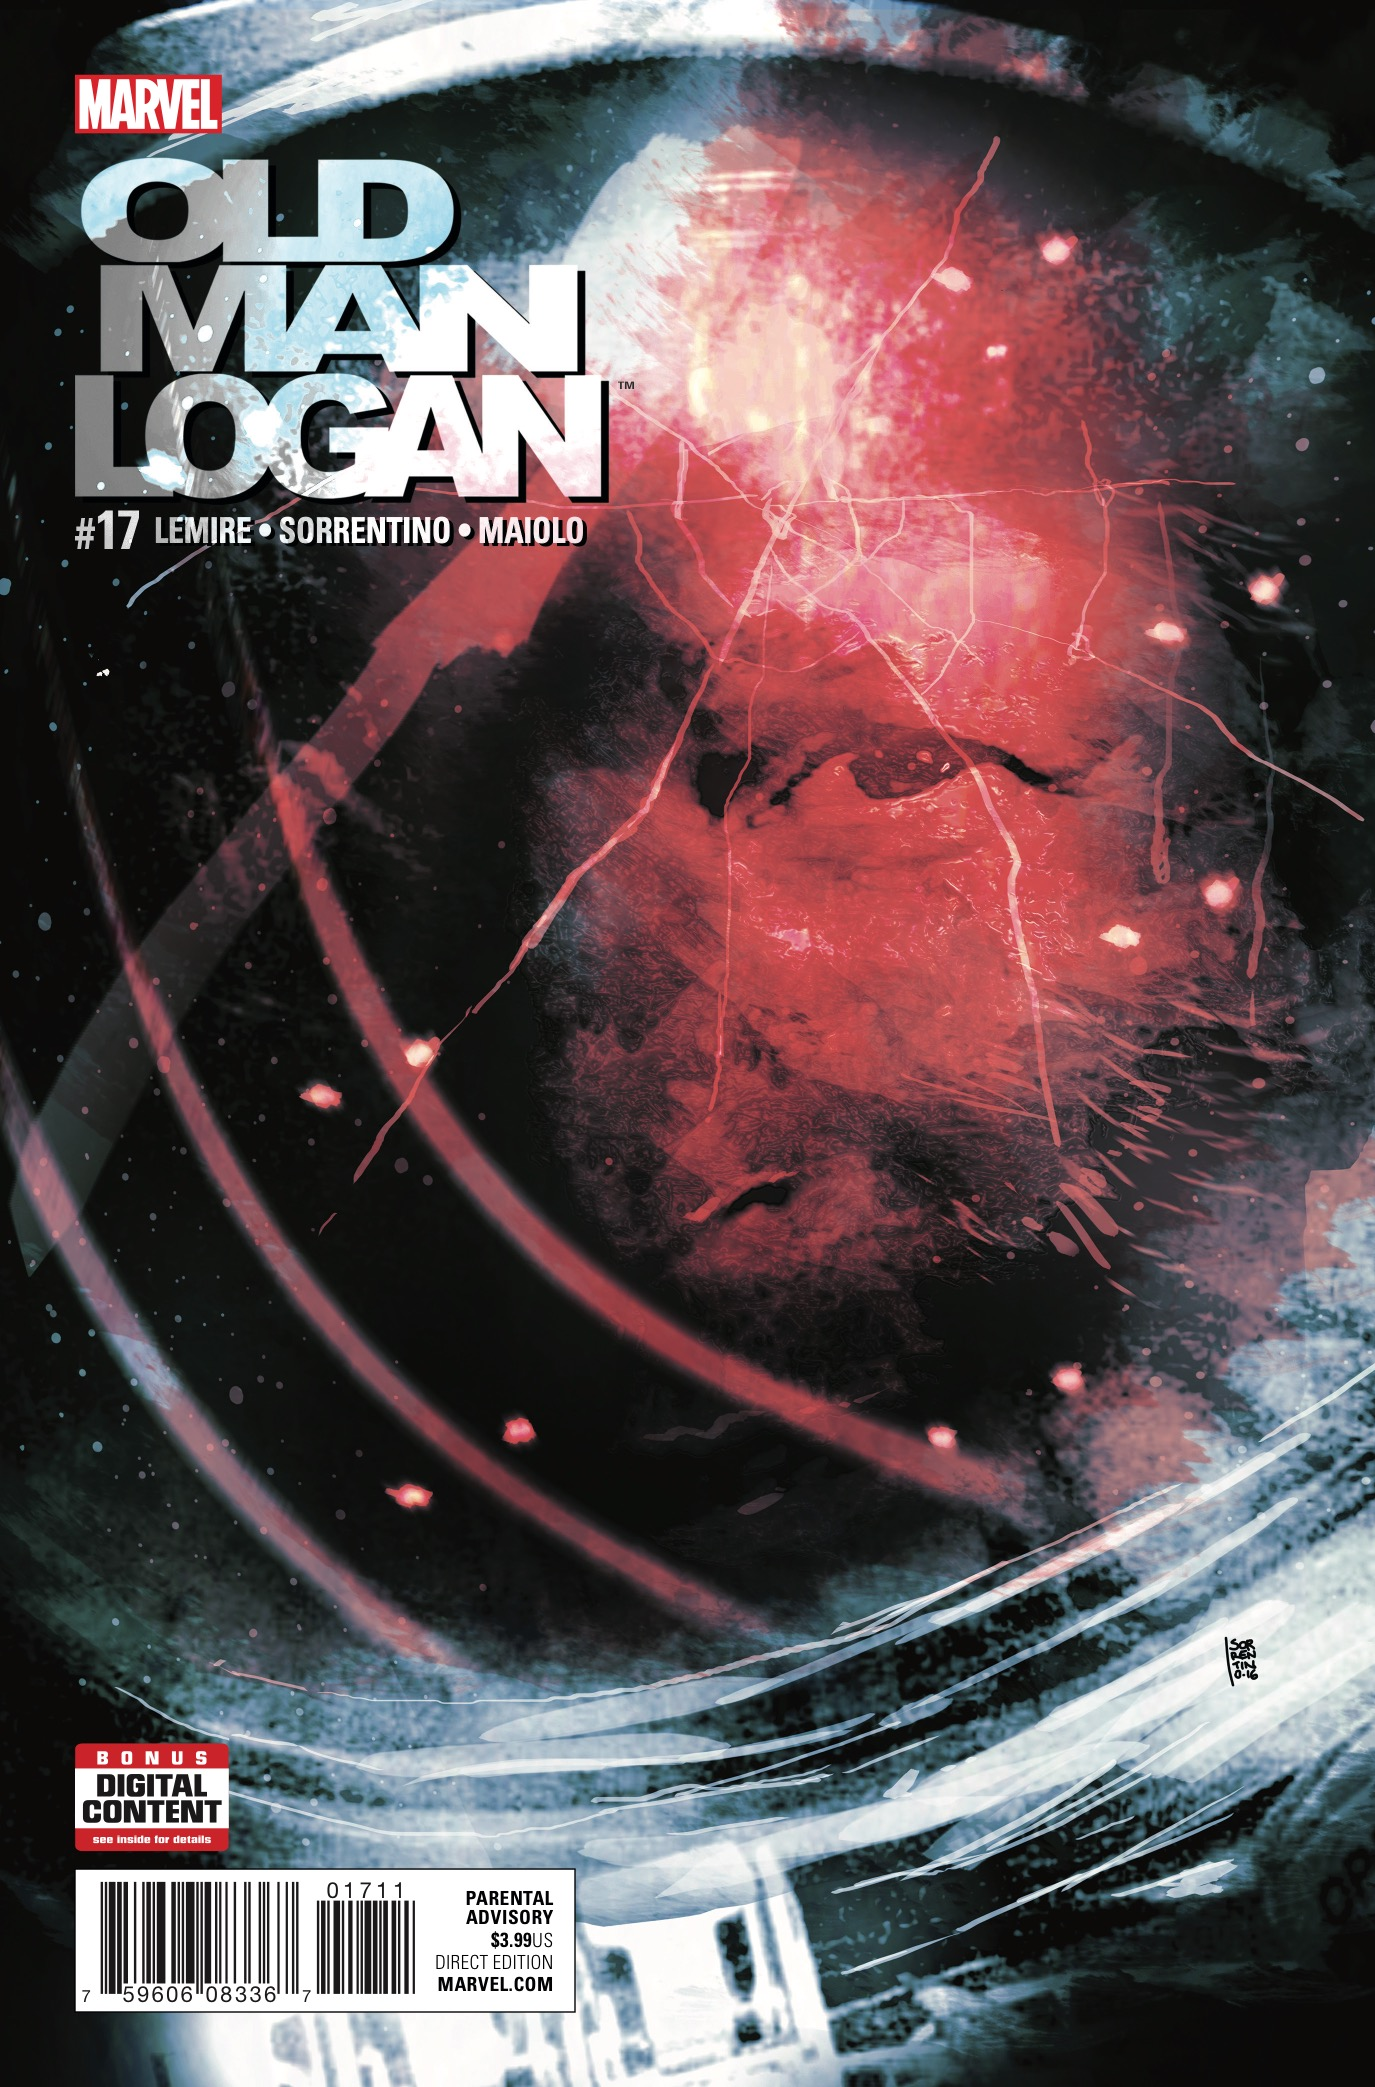 IT'S OLD MAN LOGAN VERSUS A THOUSAND BROOD – WHO DO YOU PUT YOUR MONEY ON?! I don't know about you, but I think those Brood are about to learn a lesson or two. Meanwhile, the WASTELANDS are about as bad as LOGAN remembers them being…which is twice as terrible, as Logan distinctly remembers escaping this specific nightmare dystopia. How did he return to the Wastelands? And will he be able to escape a second time?